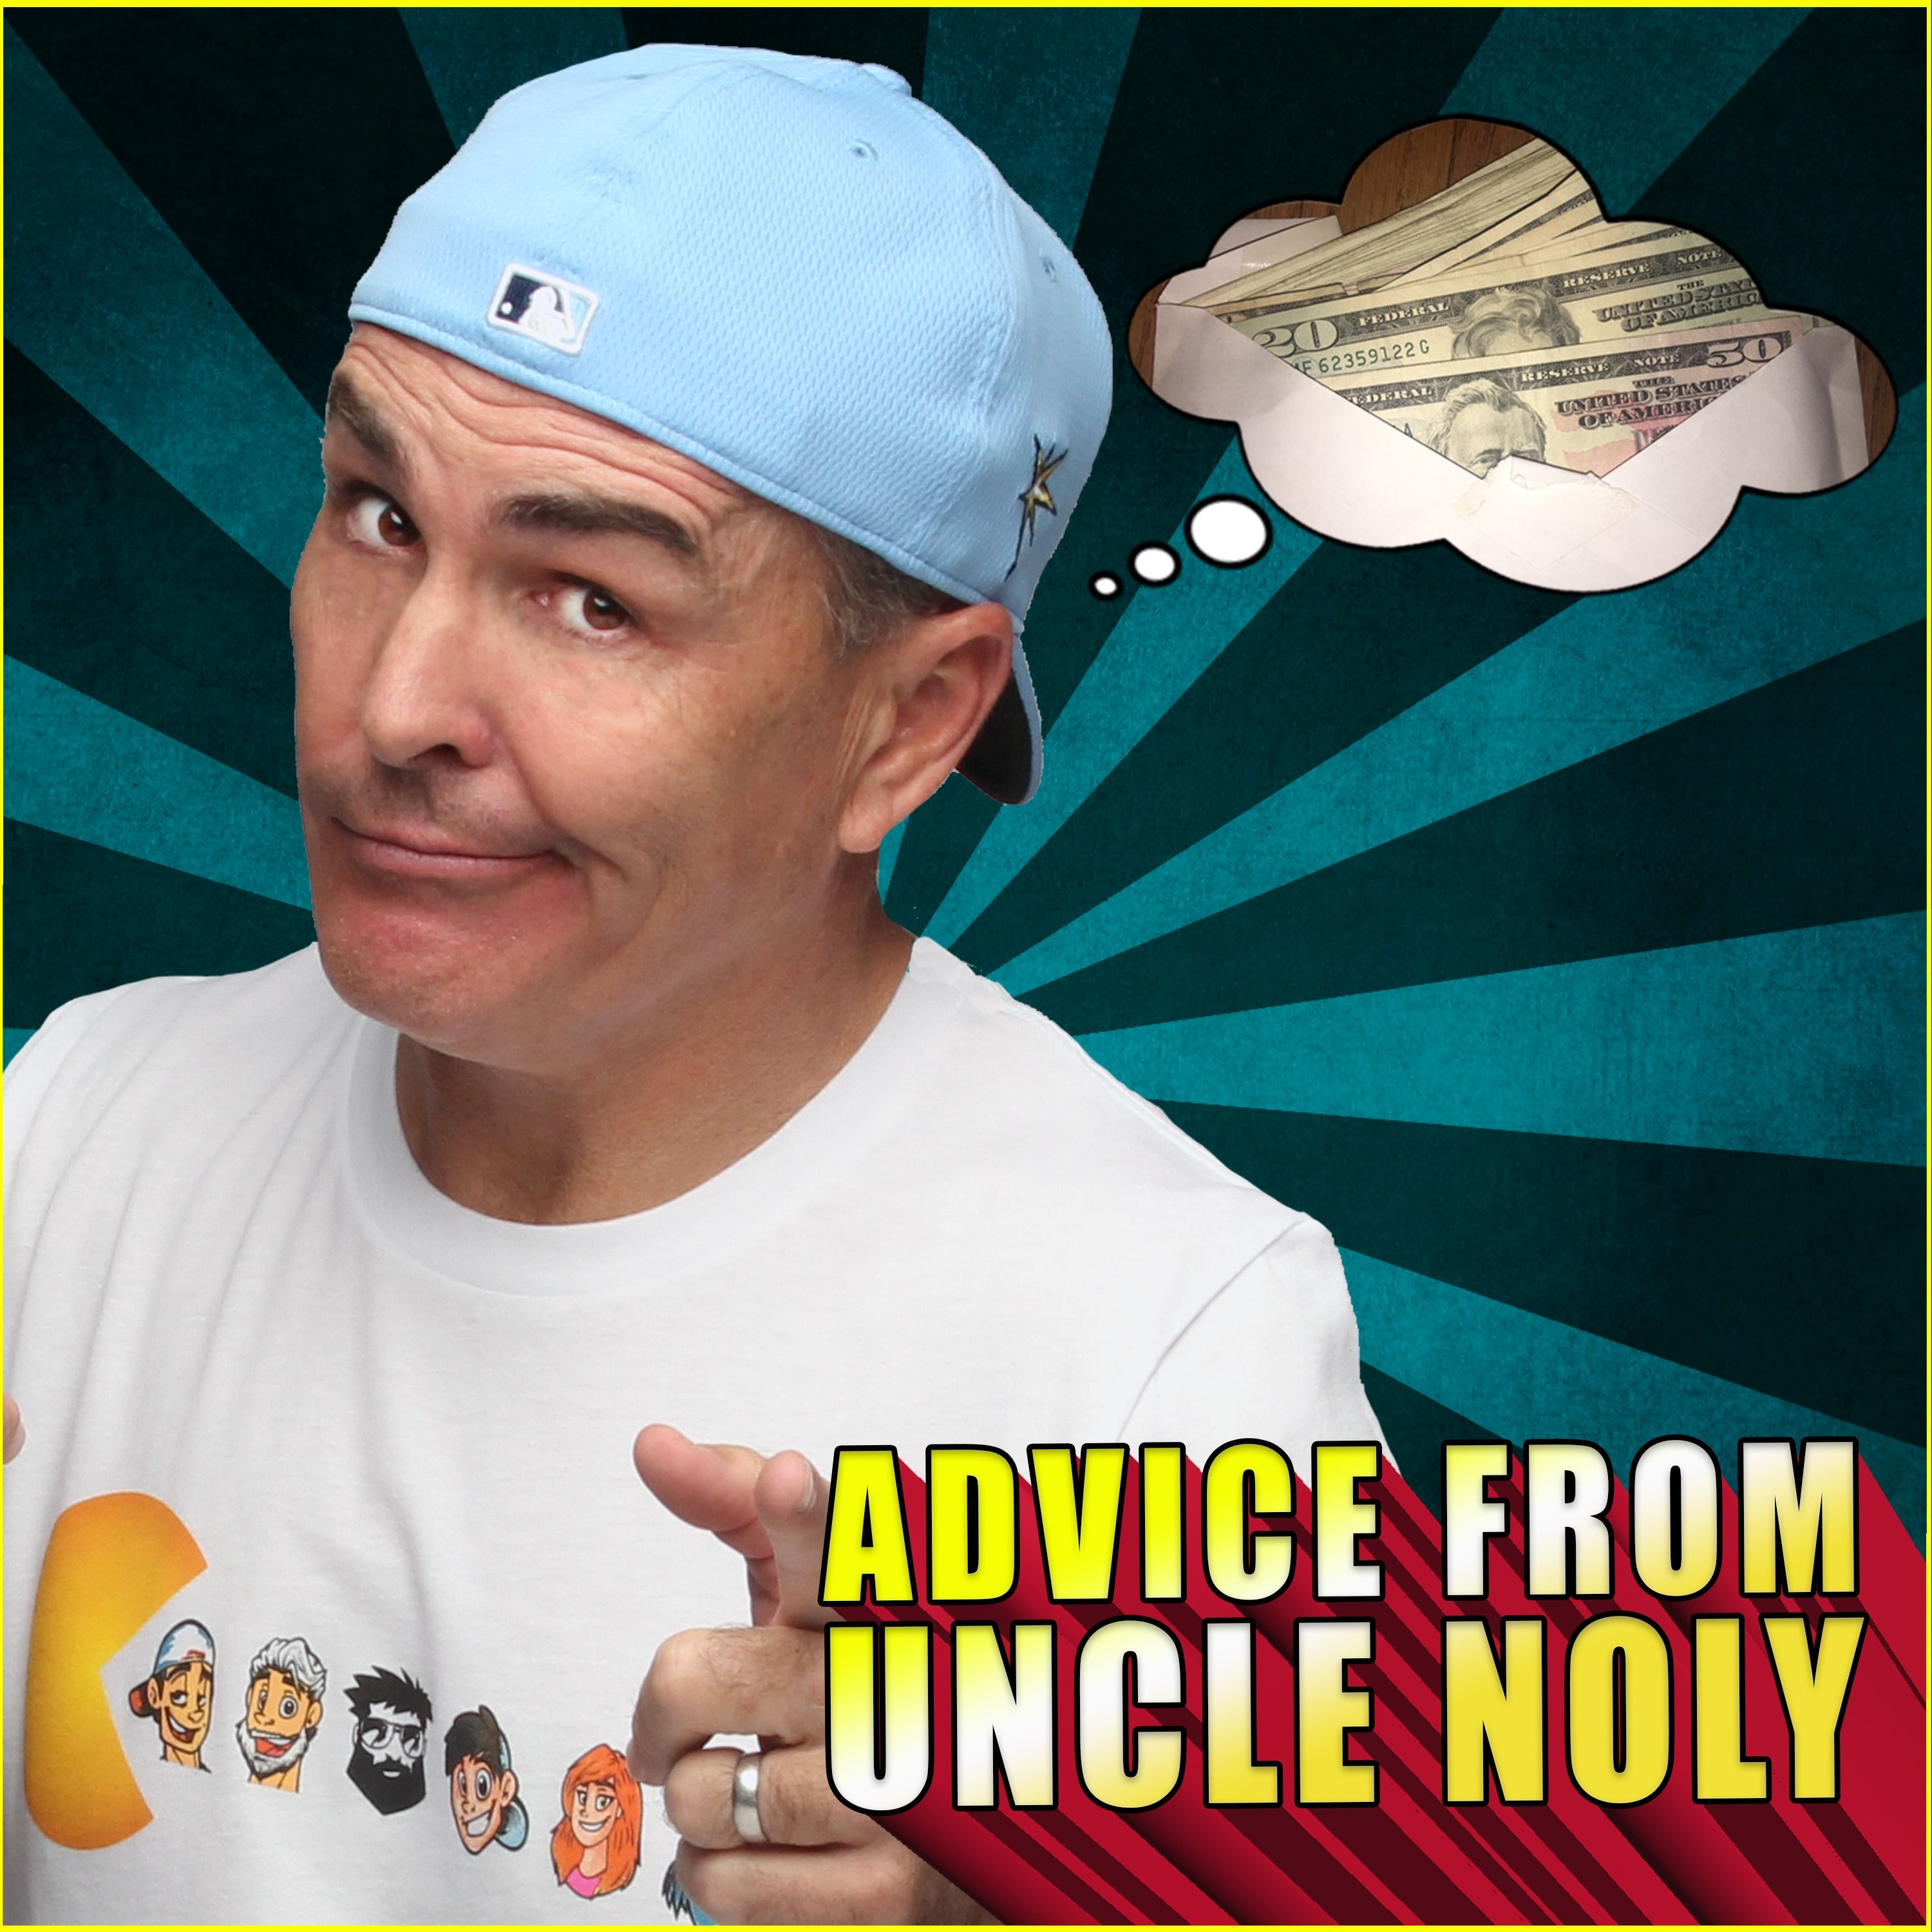 What's the Most Imaginative Insult you can Come up With? | Advice From Uncle Noly